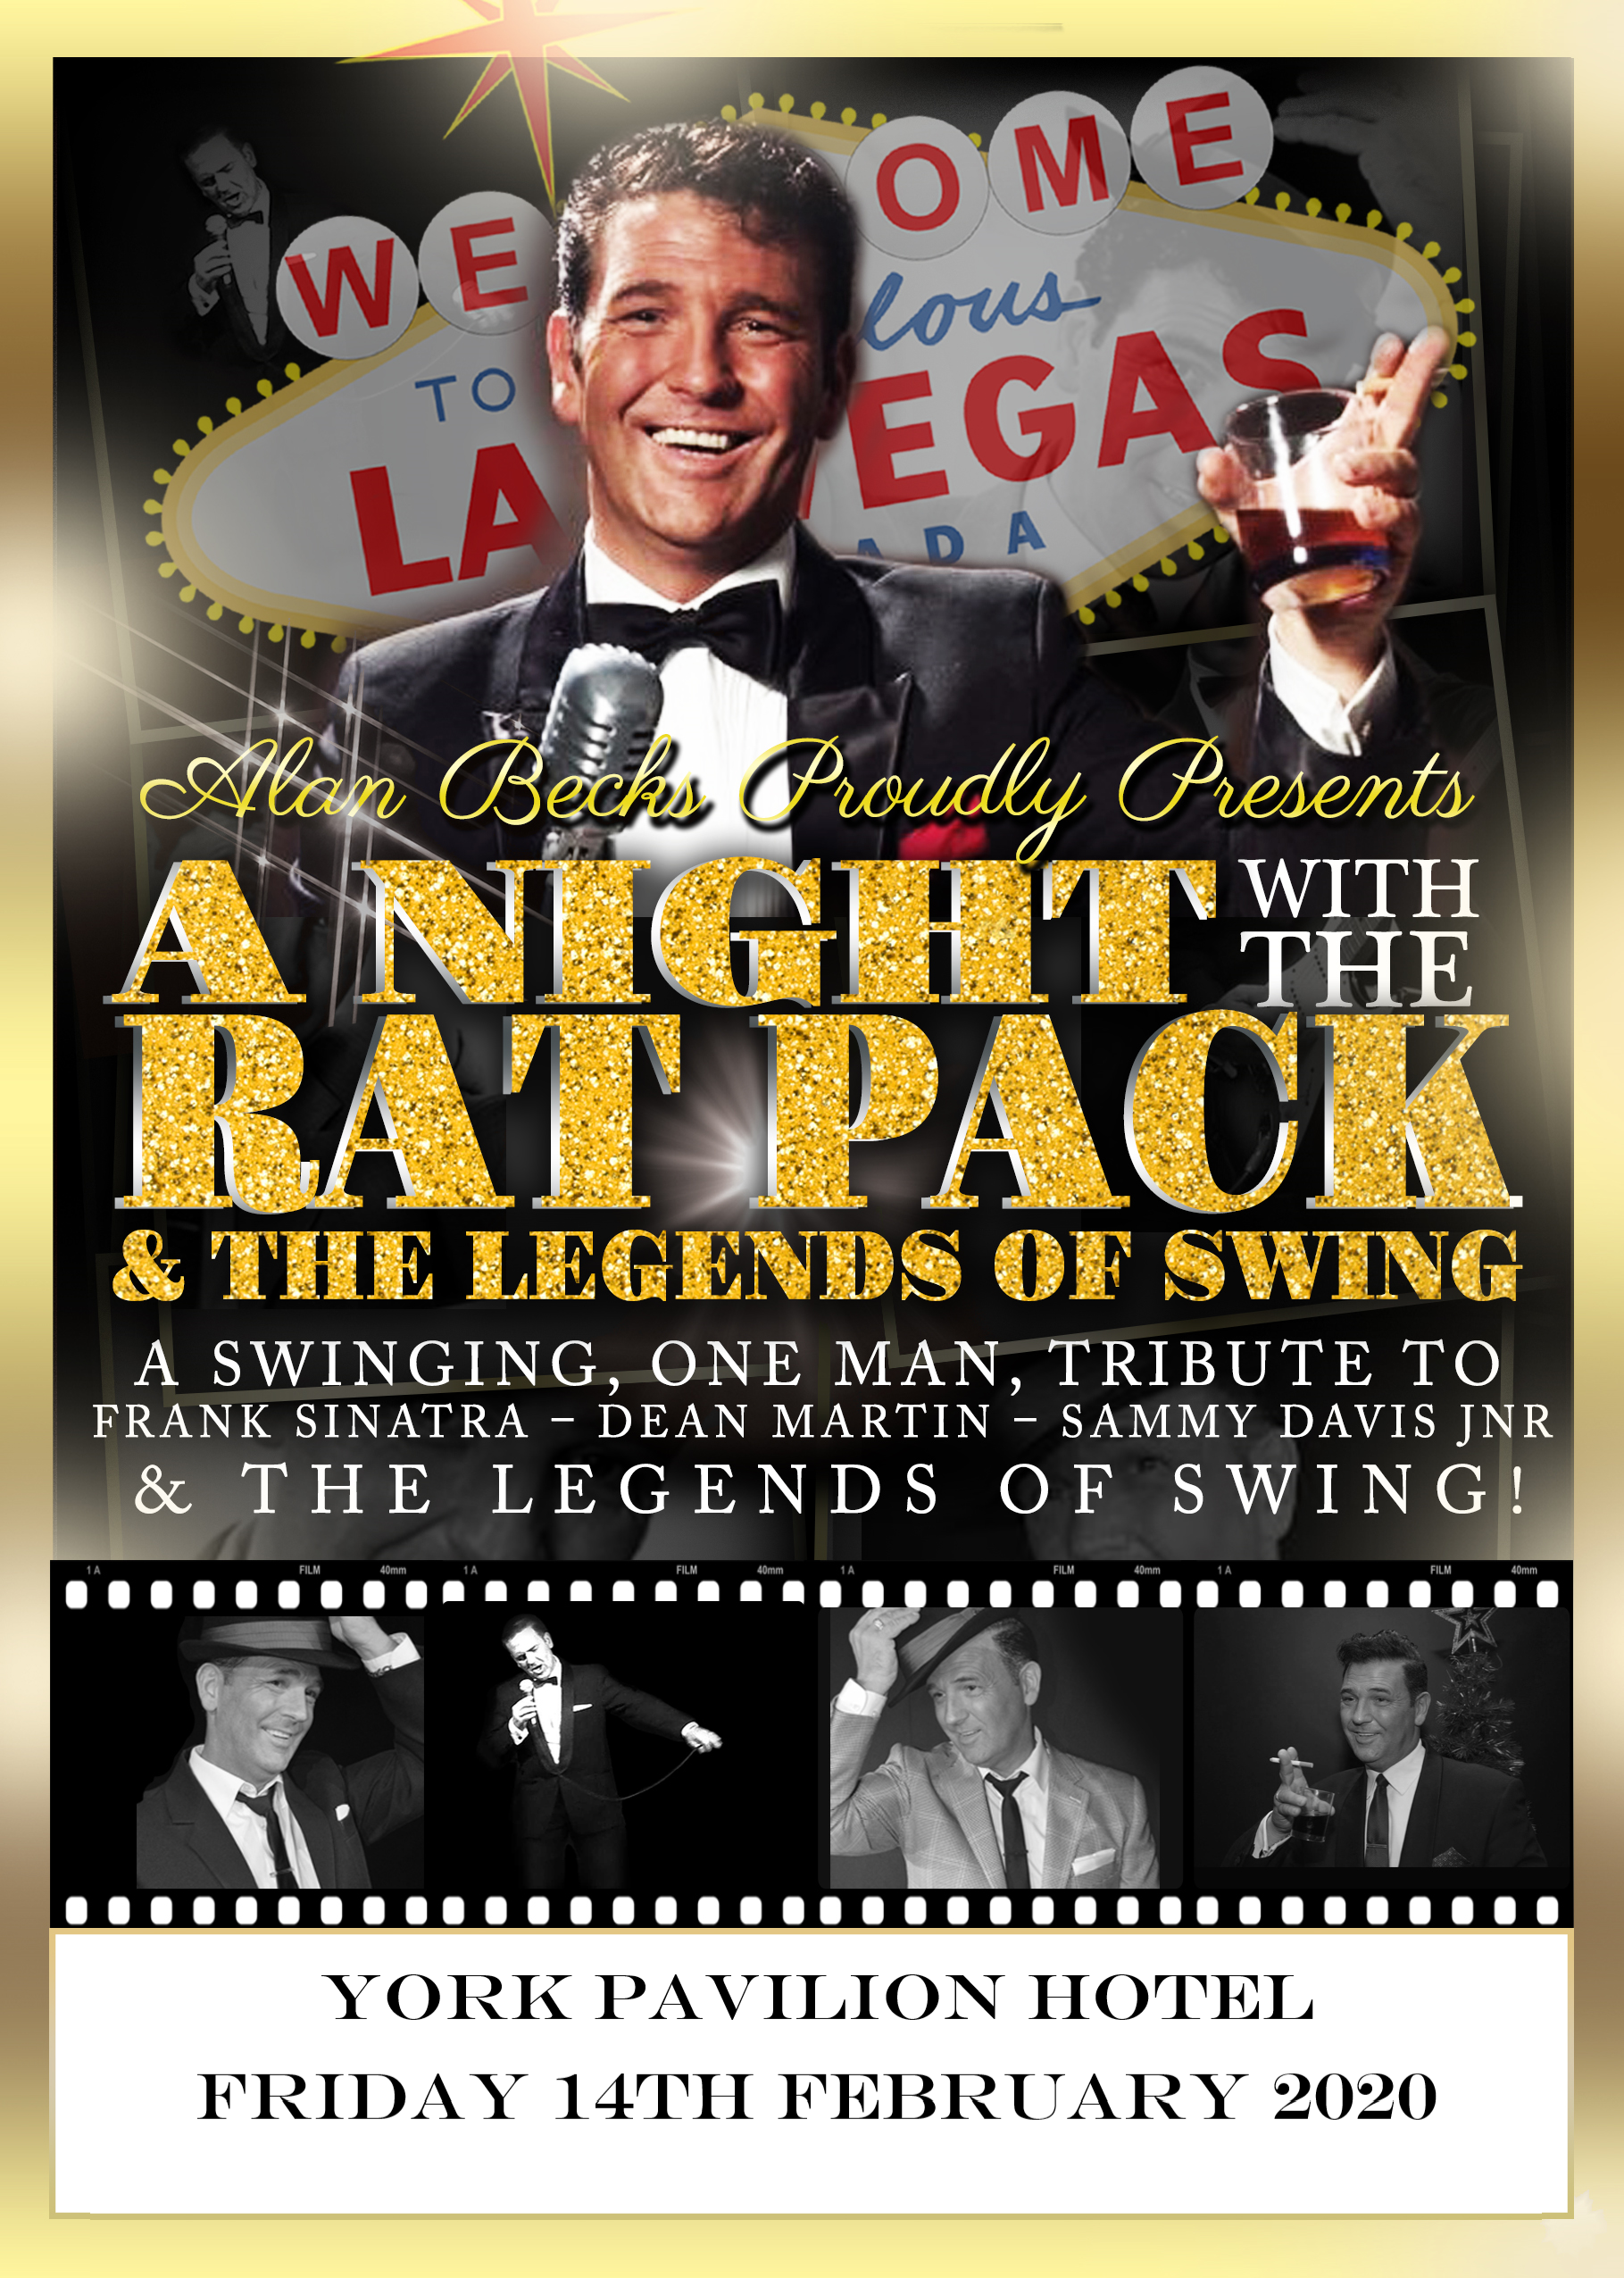 Alan Beck proudly presents A night with The Rat Pack & The Legends of Swing